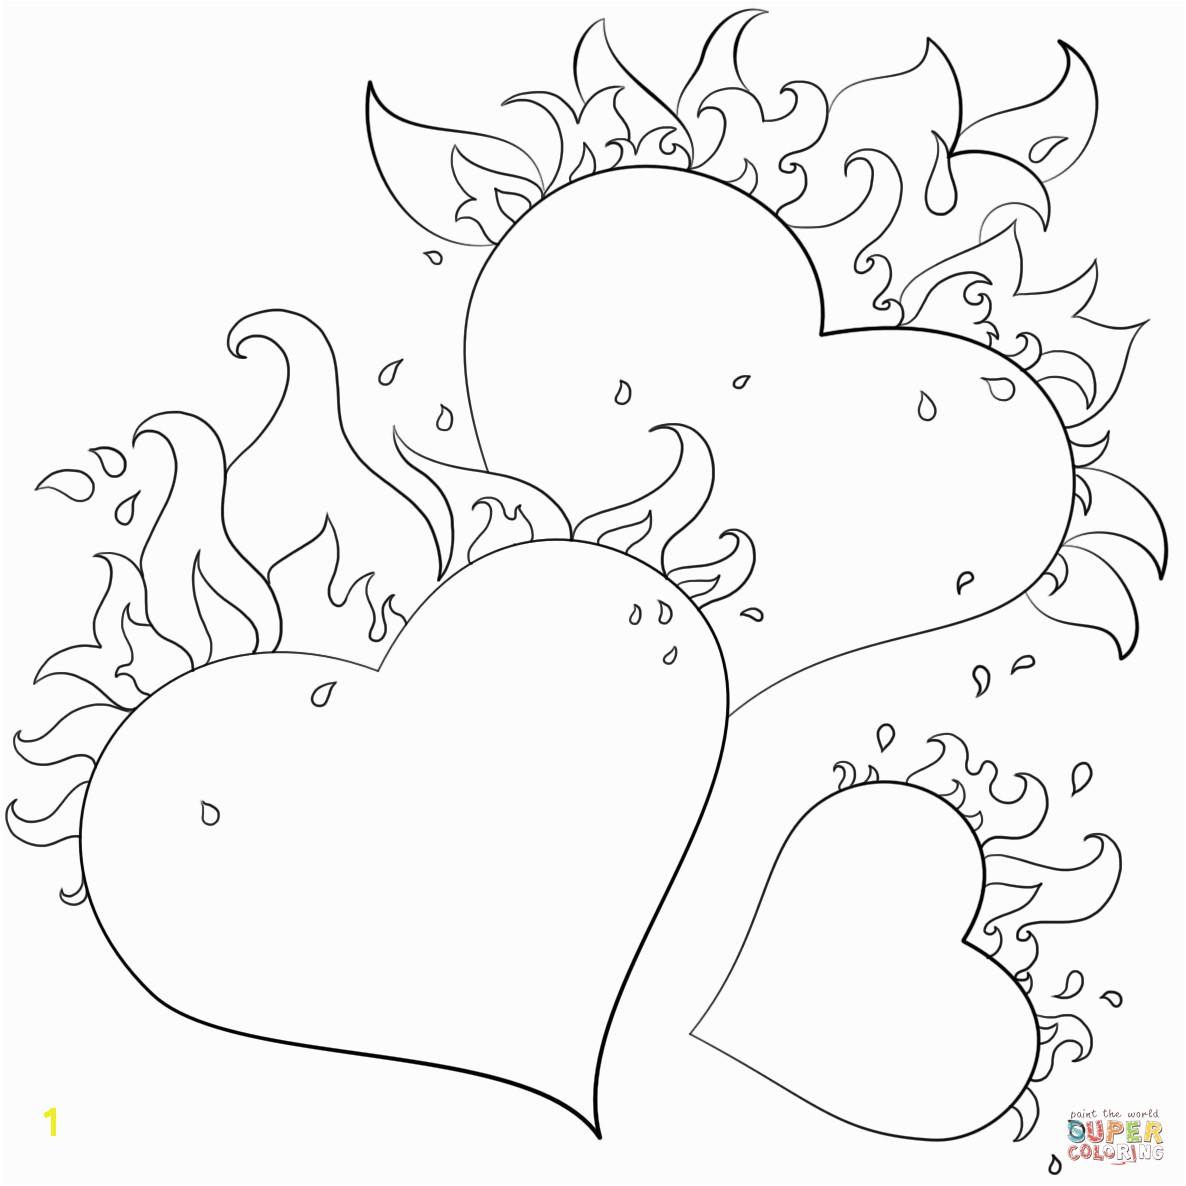 Free Coloring Pages Of Roses and Heart Hearts with Flames Coloring Page